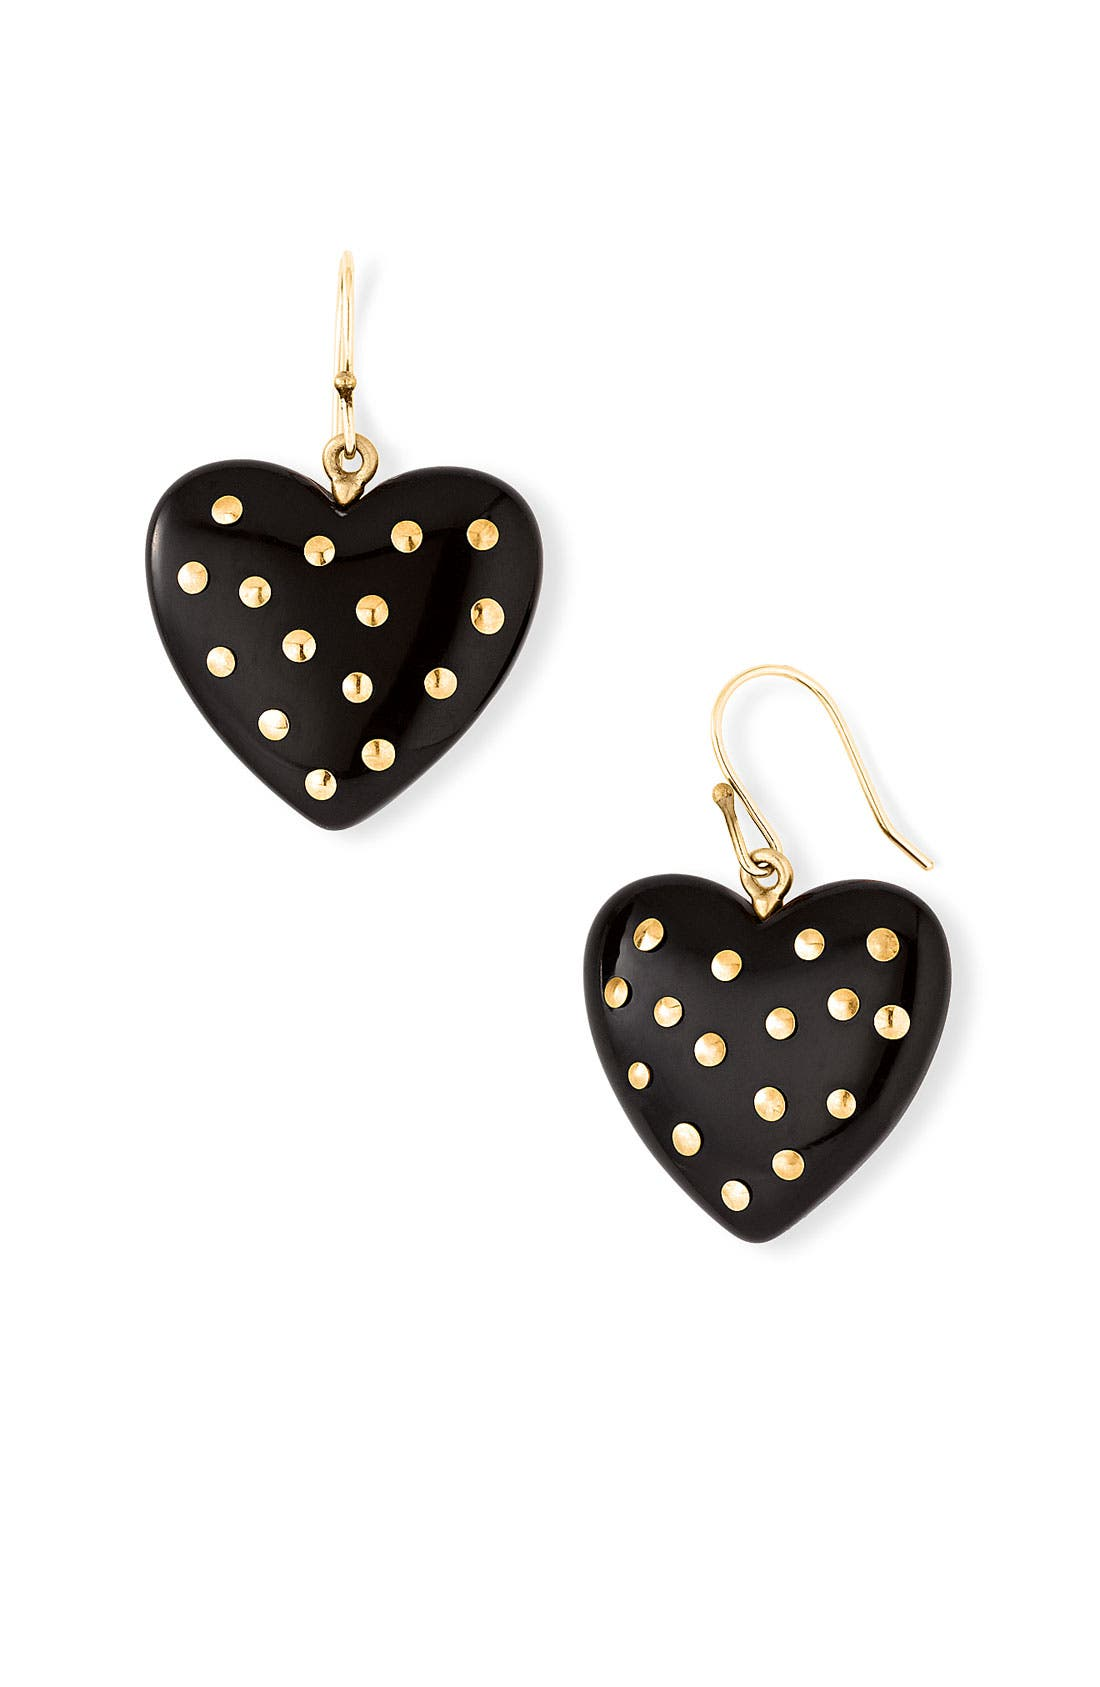 Alternate Image 1 Selected - MARC BY MARC JACOBS 'House of Cards' Studded Heart Earrings